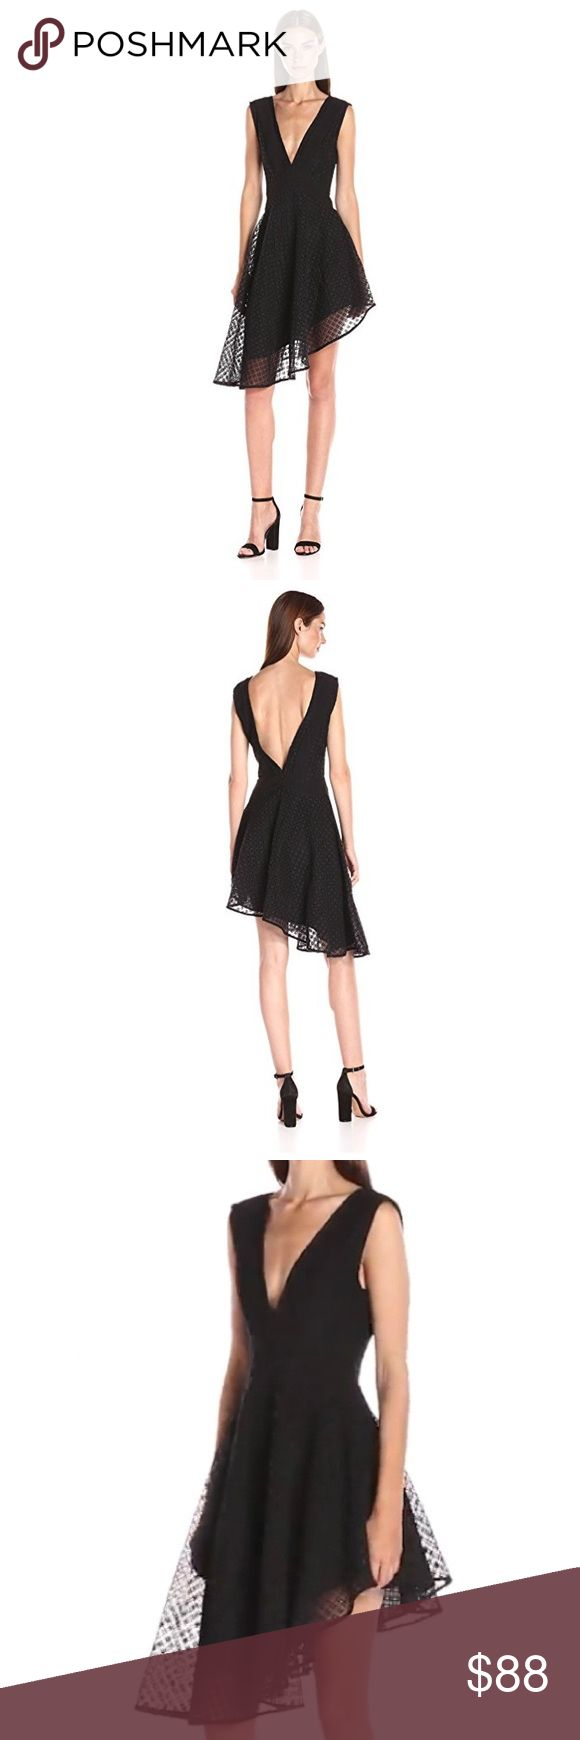 ❤️SOLD❤️ finders keepers // organza dress NWT findersKEEPERS black organza dress. Tank sleeves, deep front and back v, asymmetrical hemline, wide waistband, hidden back zip. Absolutely gorgeous for spring/summer weddings and parties! Finders Keepers Dresses Asymmetrical